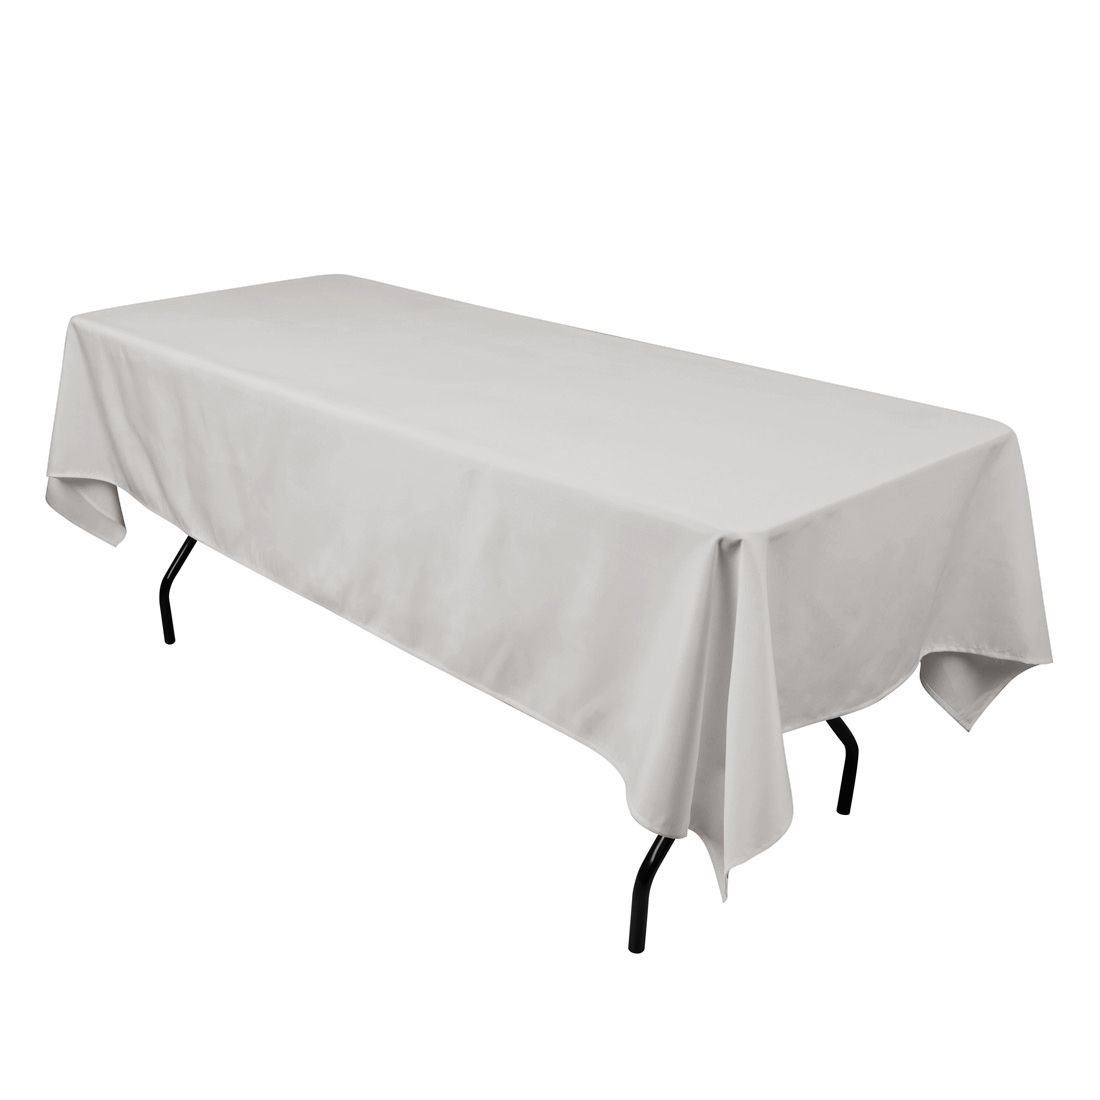 LinenTablecloth 60 x 102-Inch Rectangular Polyester Tablecloth Beige LinenTablecloth.com 60102-010121